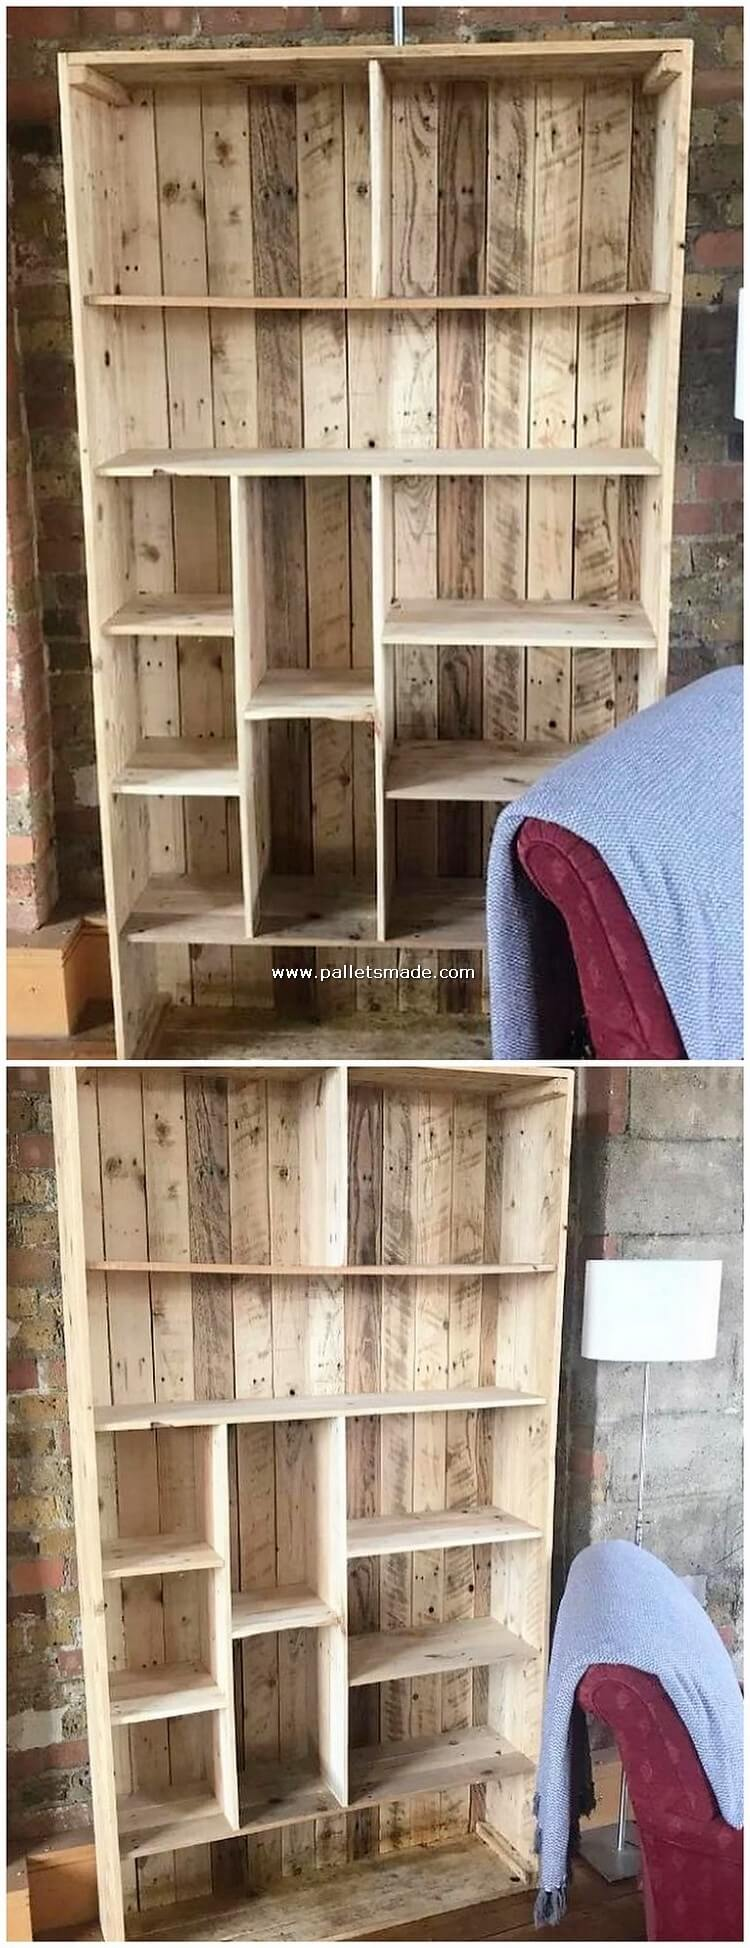 Recycled Wood Pallets Pallet Made